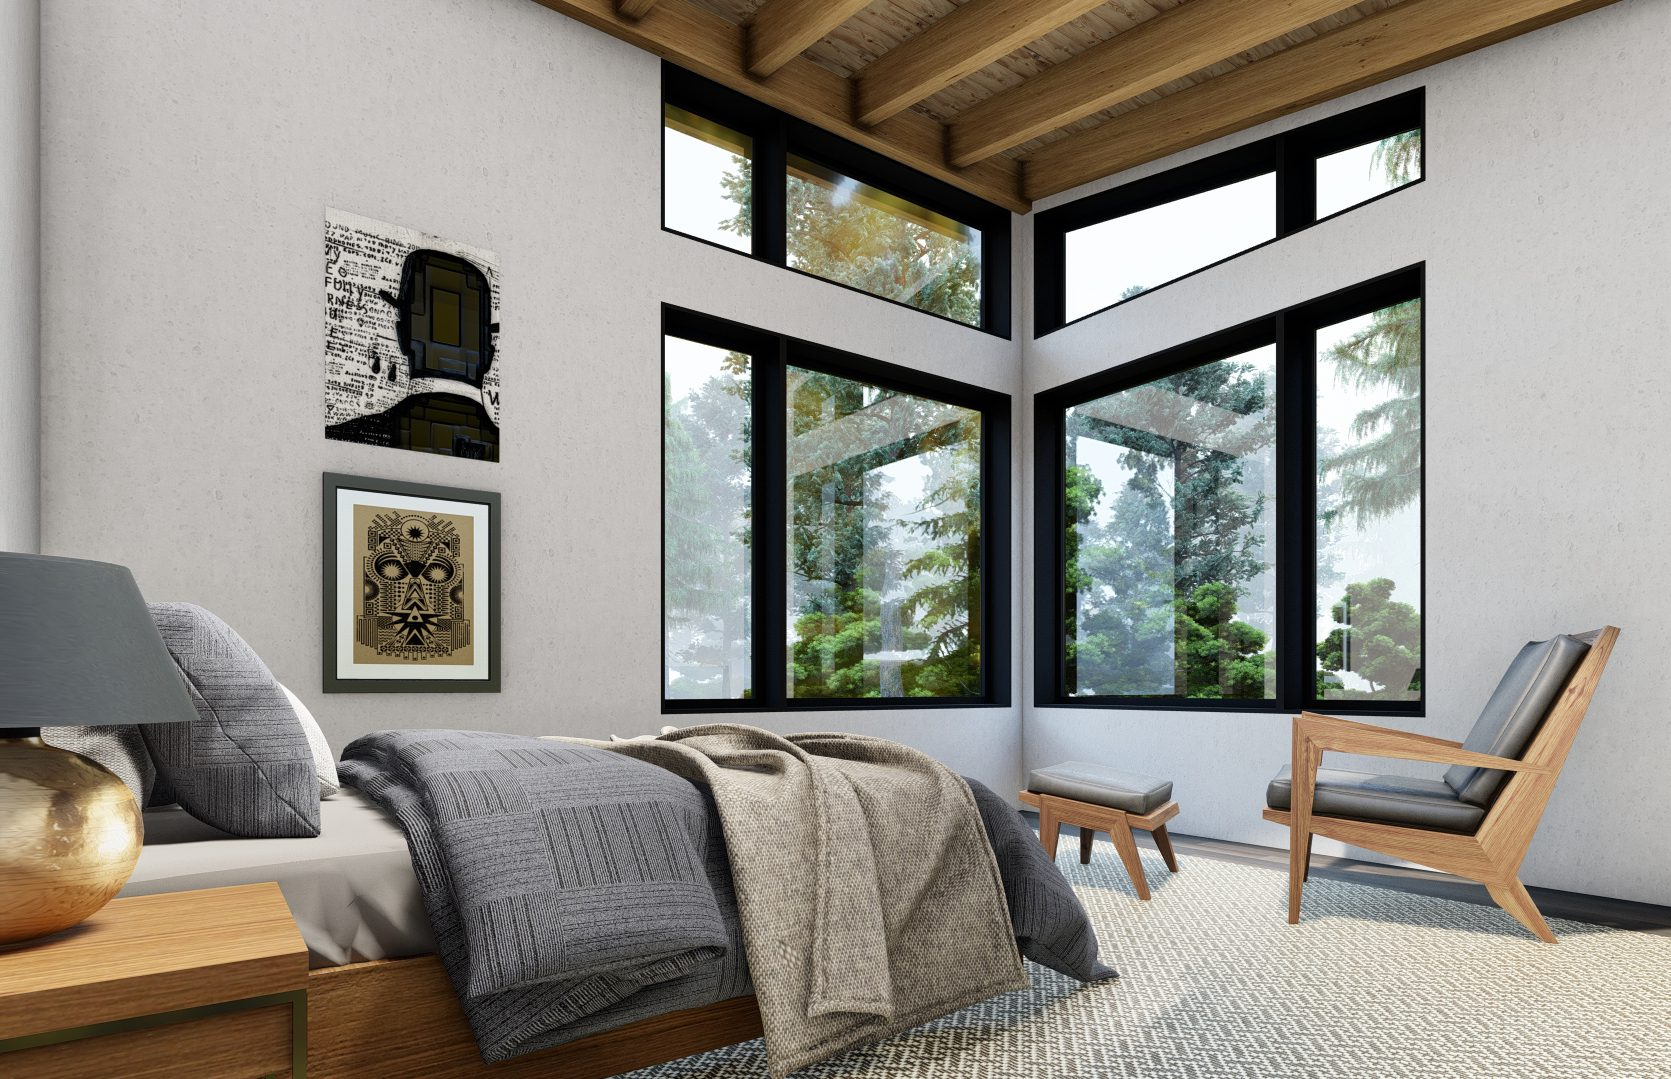 Normerica Timber Frames, House Plan, The Bayfield 3945, Interior, Bedroom